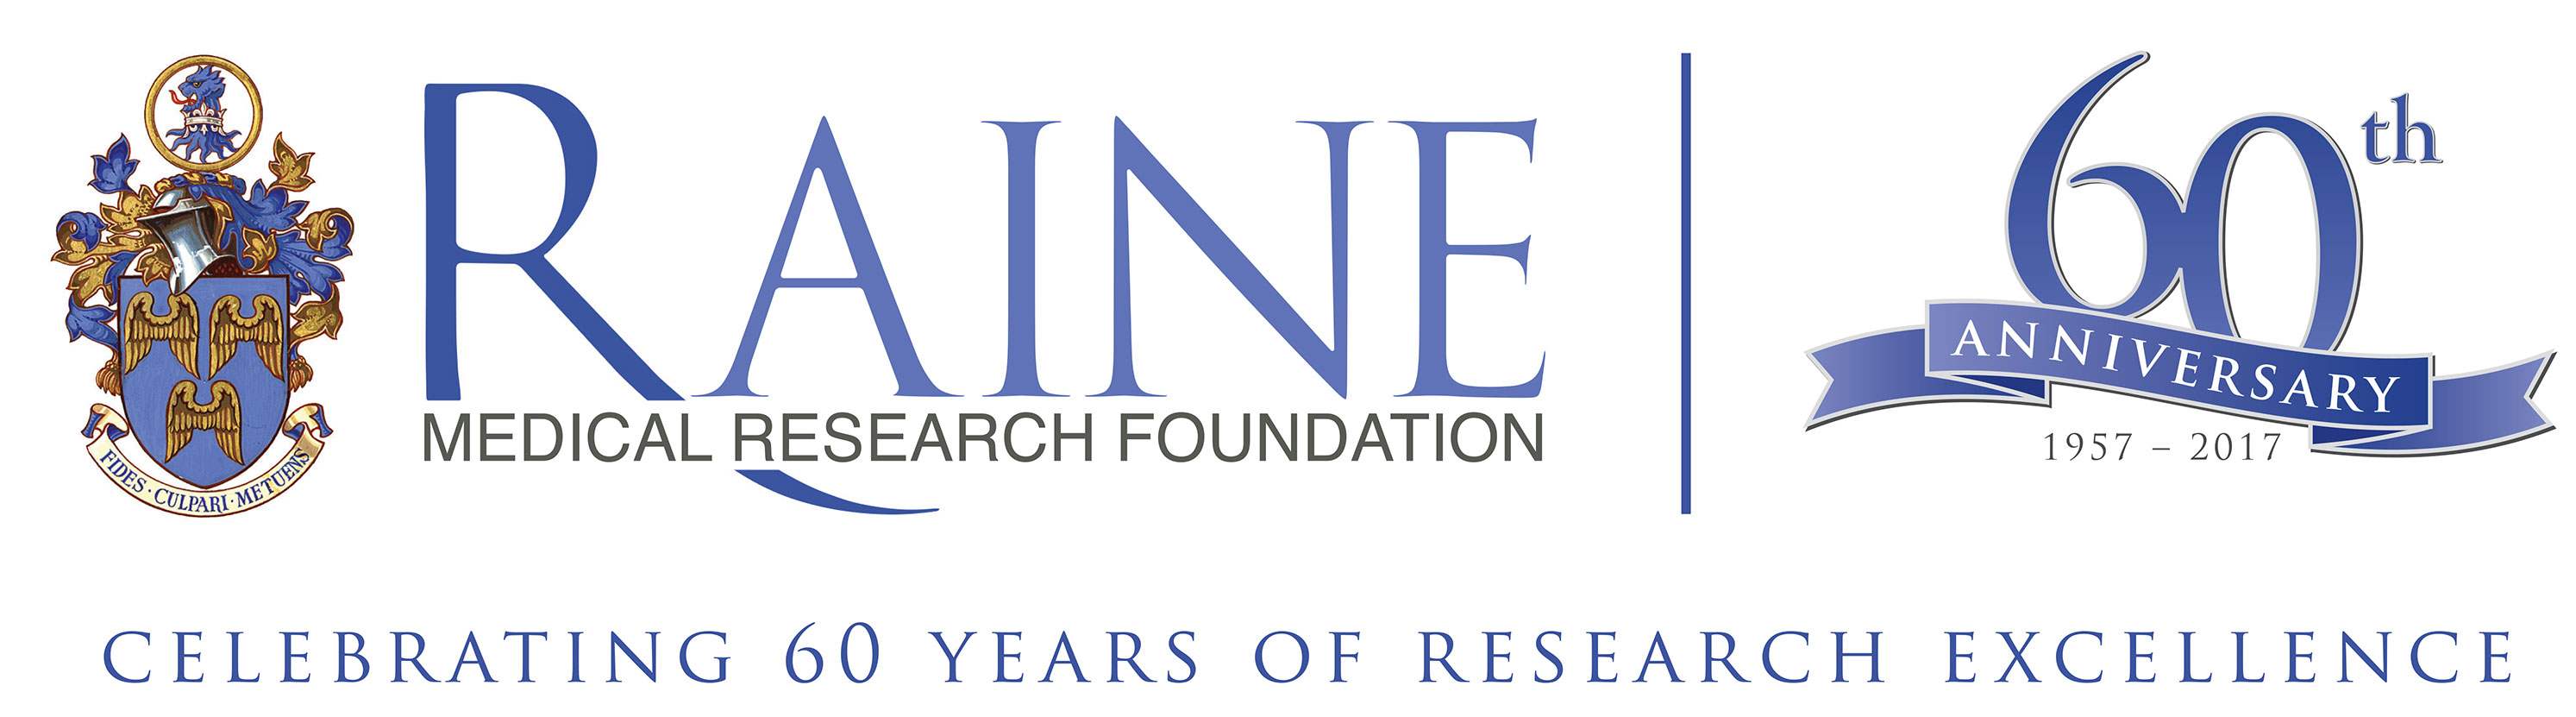 raine-foundation-60th-anniversary-logo